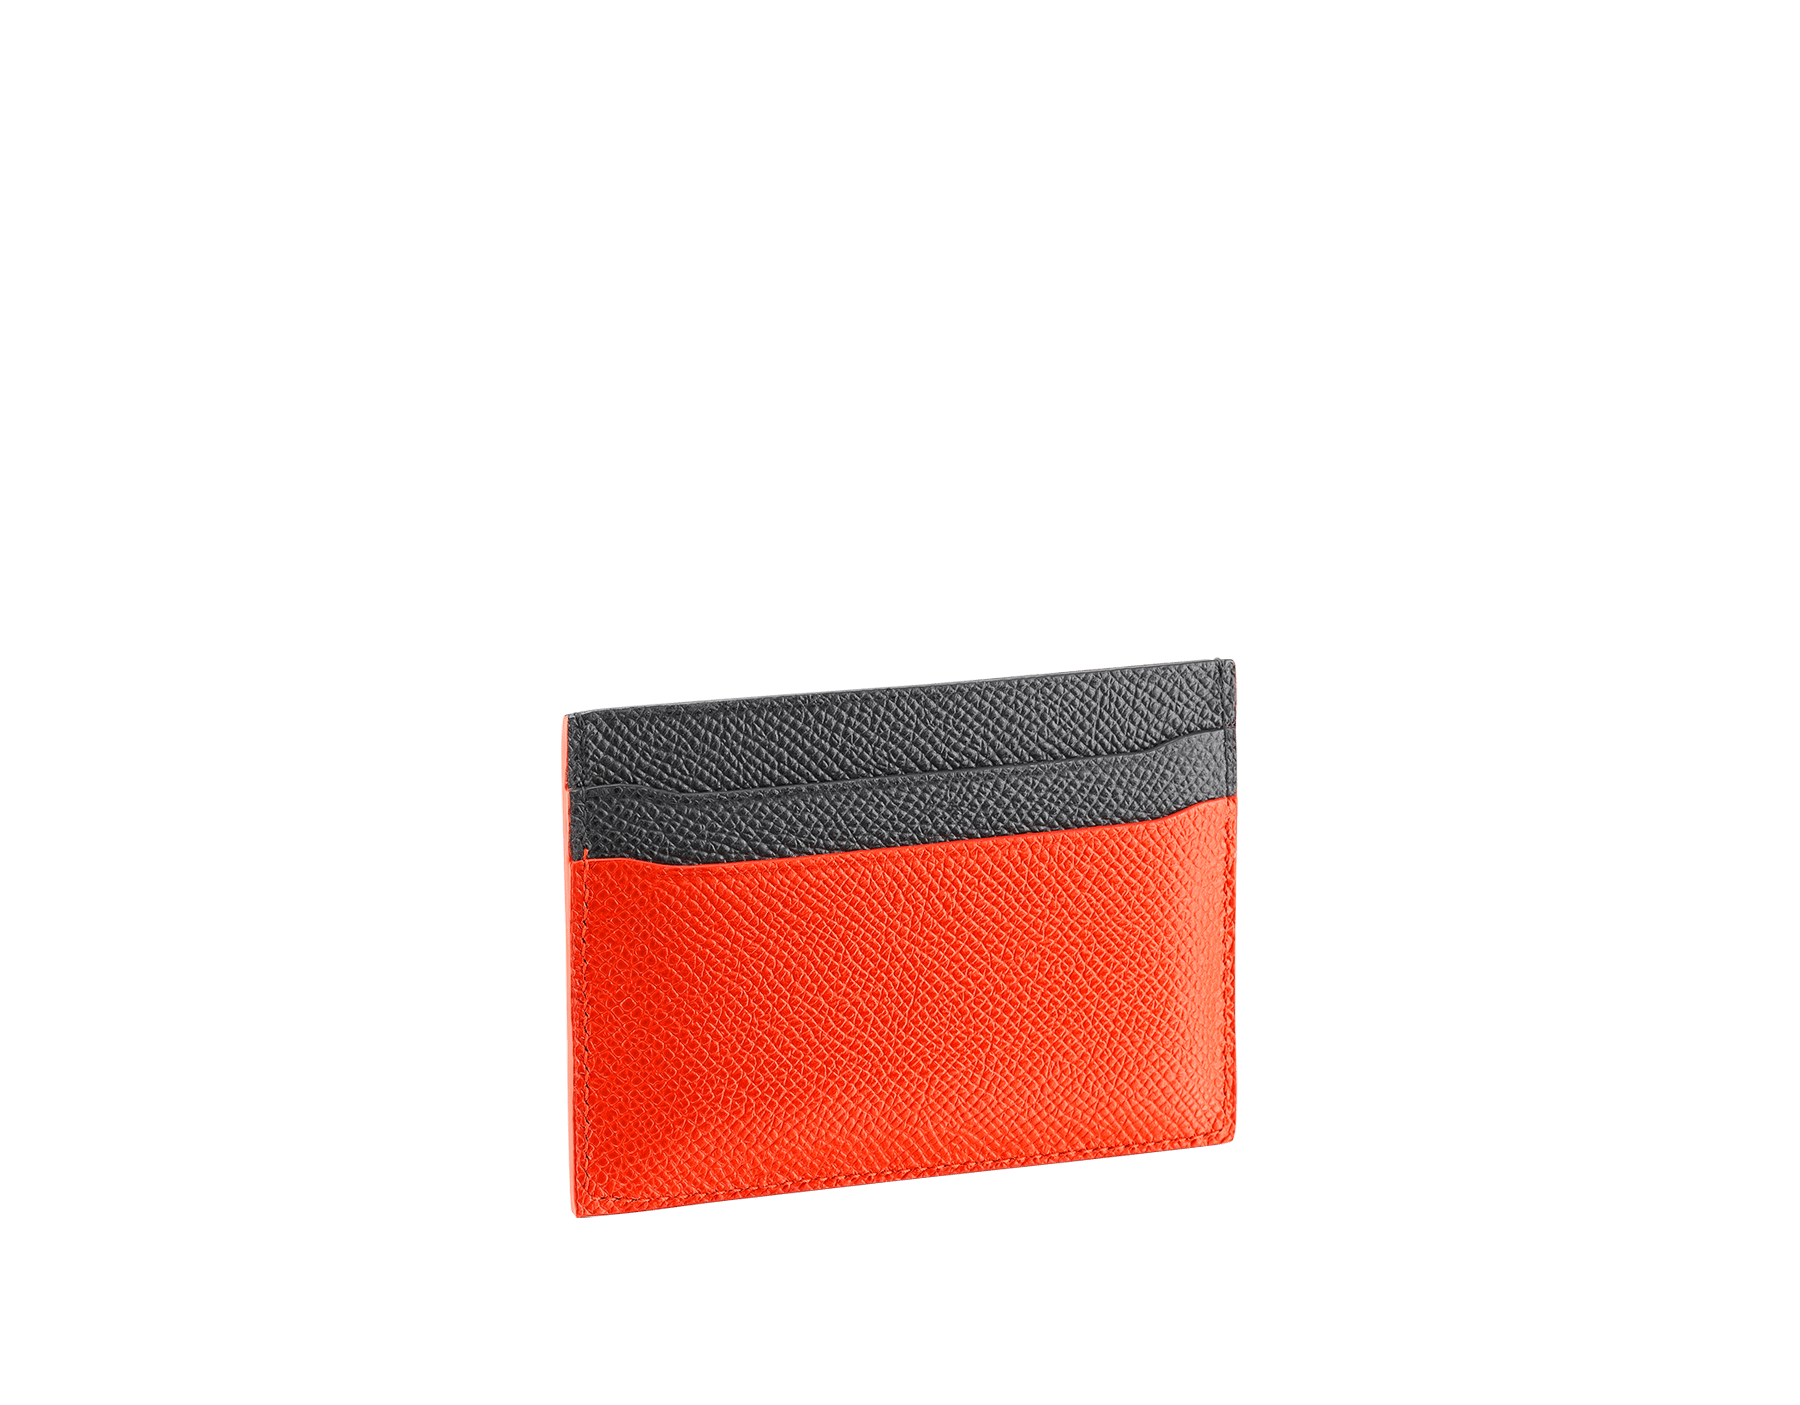 BVLGARI BVLGARI credit card holder in fire amber and charcoal diamond grain calf leather and fire amber nappa lining. Iconic logo decoration in palladium-plated brass. 289119 image 2